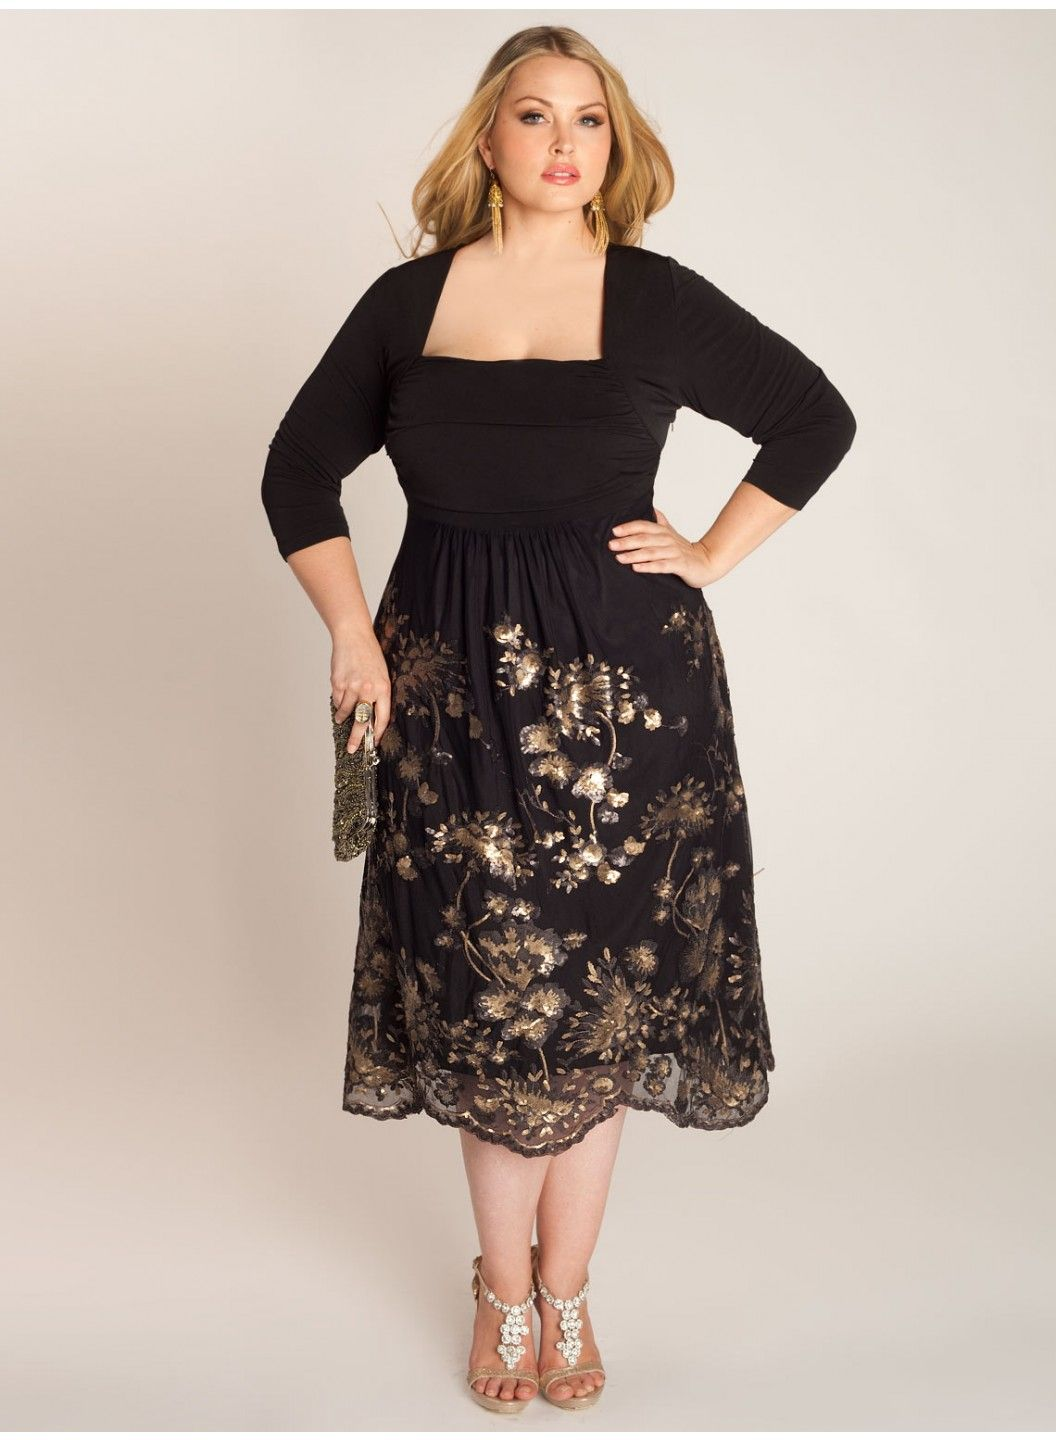 Formal Dresses For Plus Size Women | Wedding Sponsor dress | Pinterest